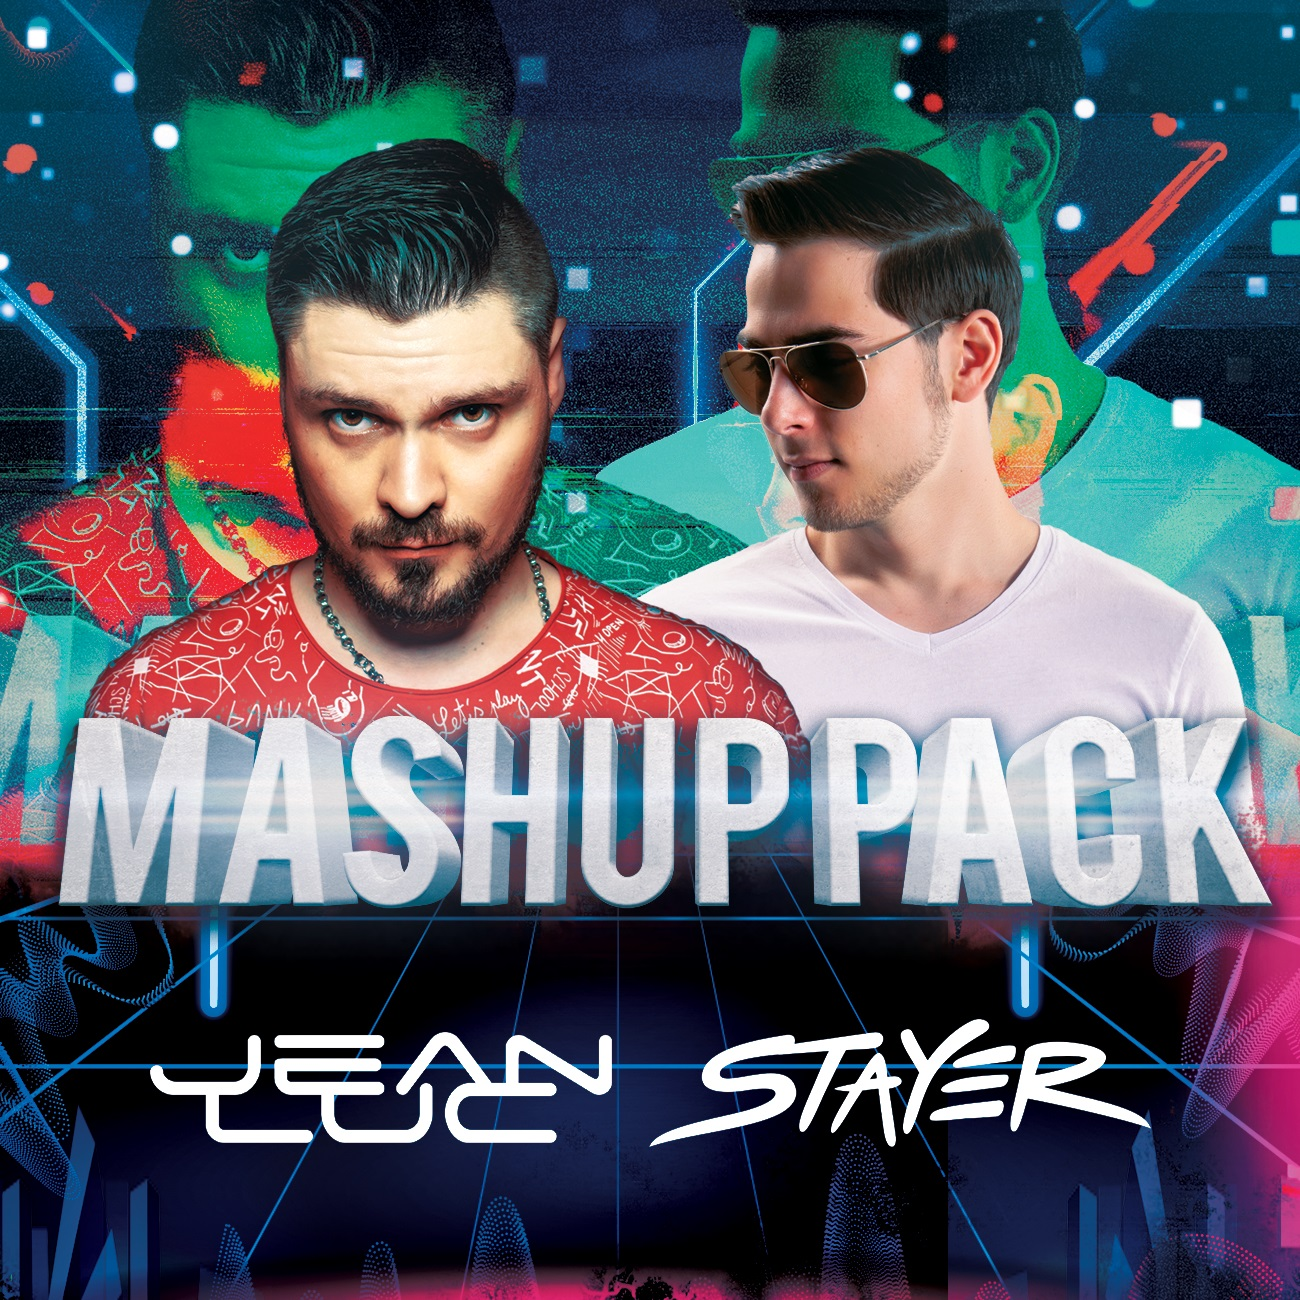 Jean Luc & Stayer - Mashup Pack 2020